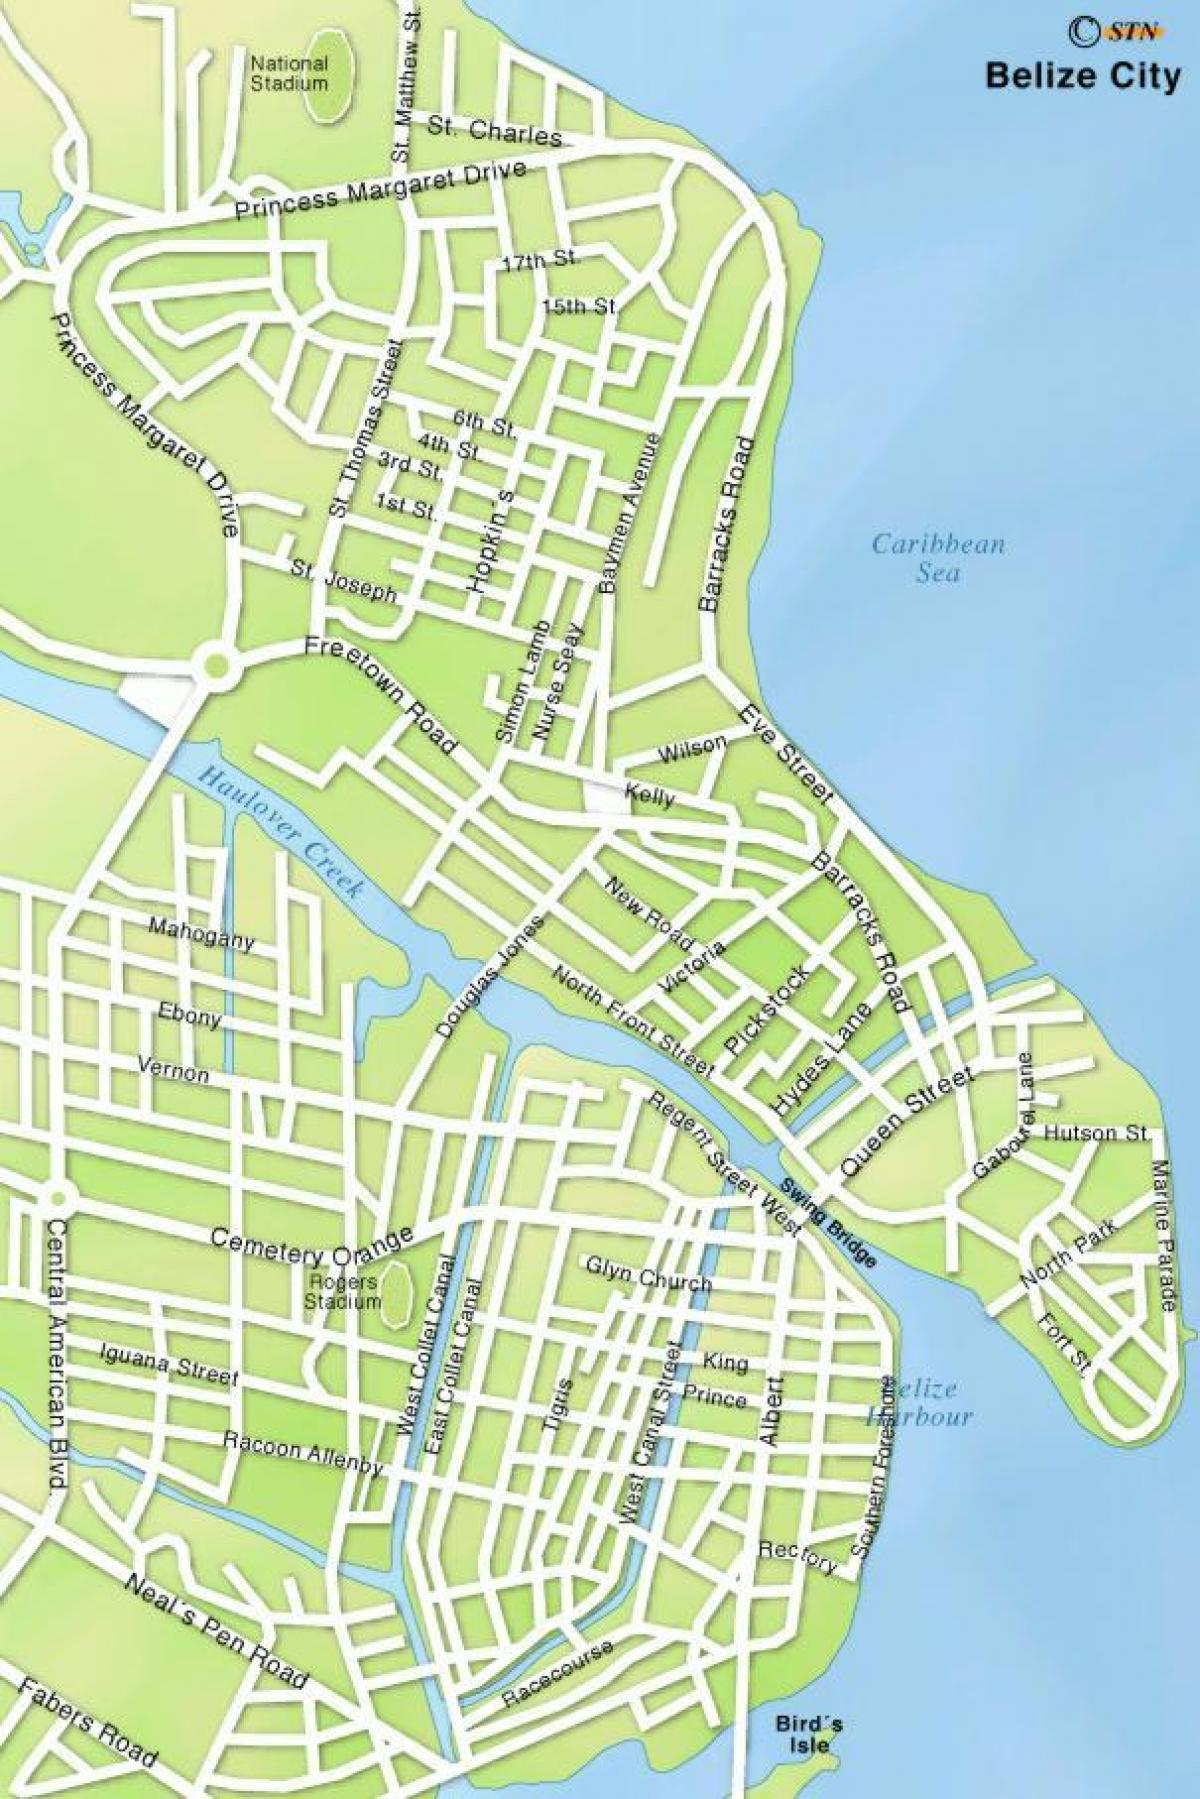 map of Belize city streets